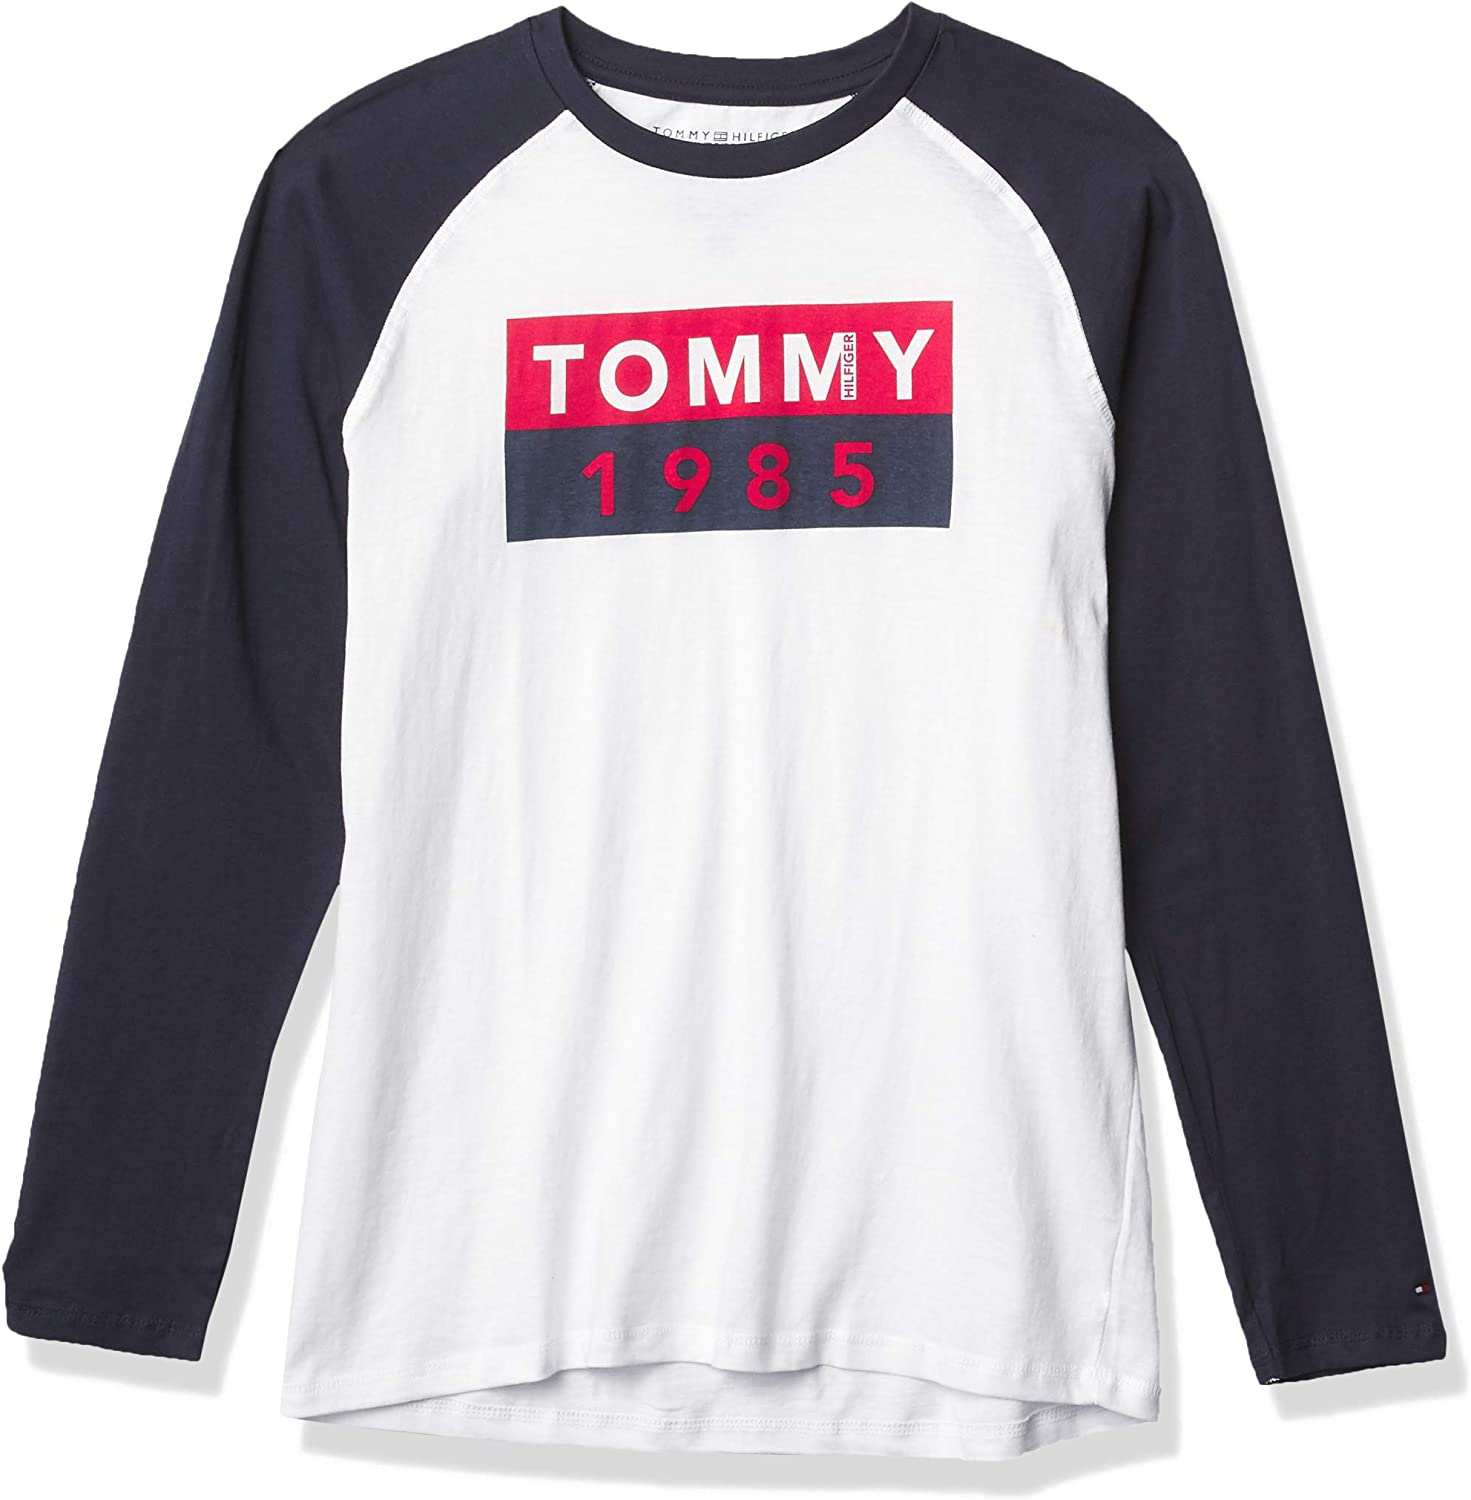 5% OFF Tommy Hilfiger Boys' Long Abstract Flag Sleeve Reservation T-Shirt